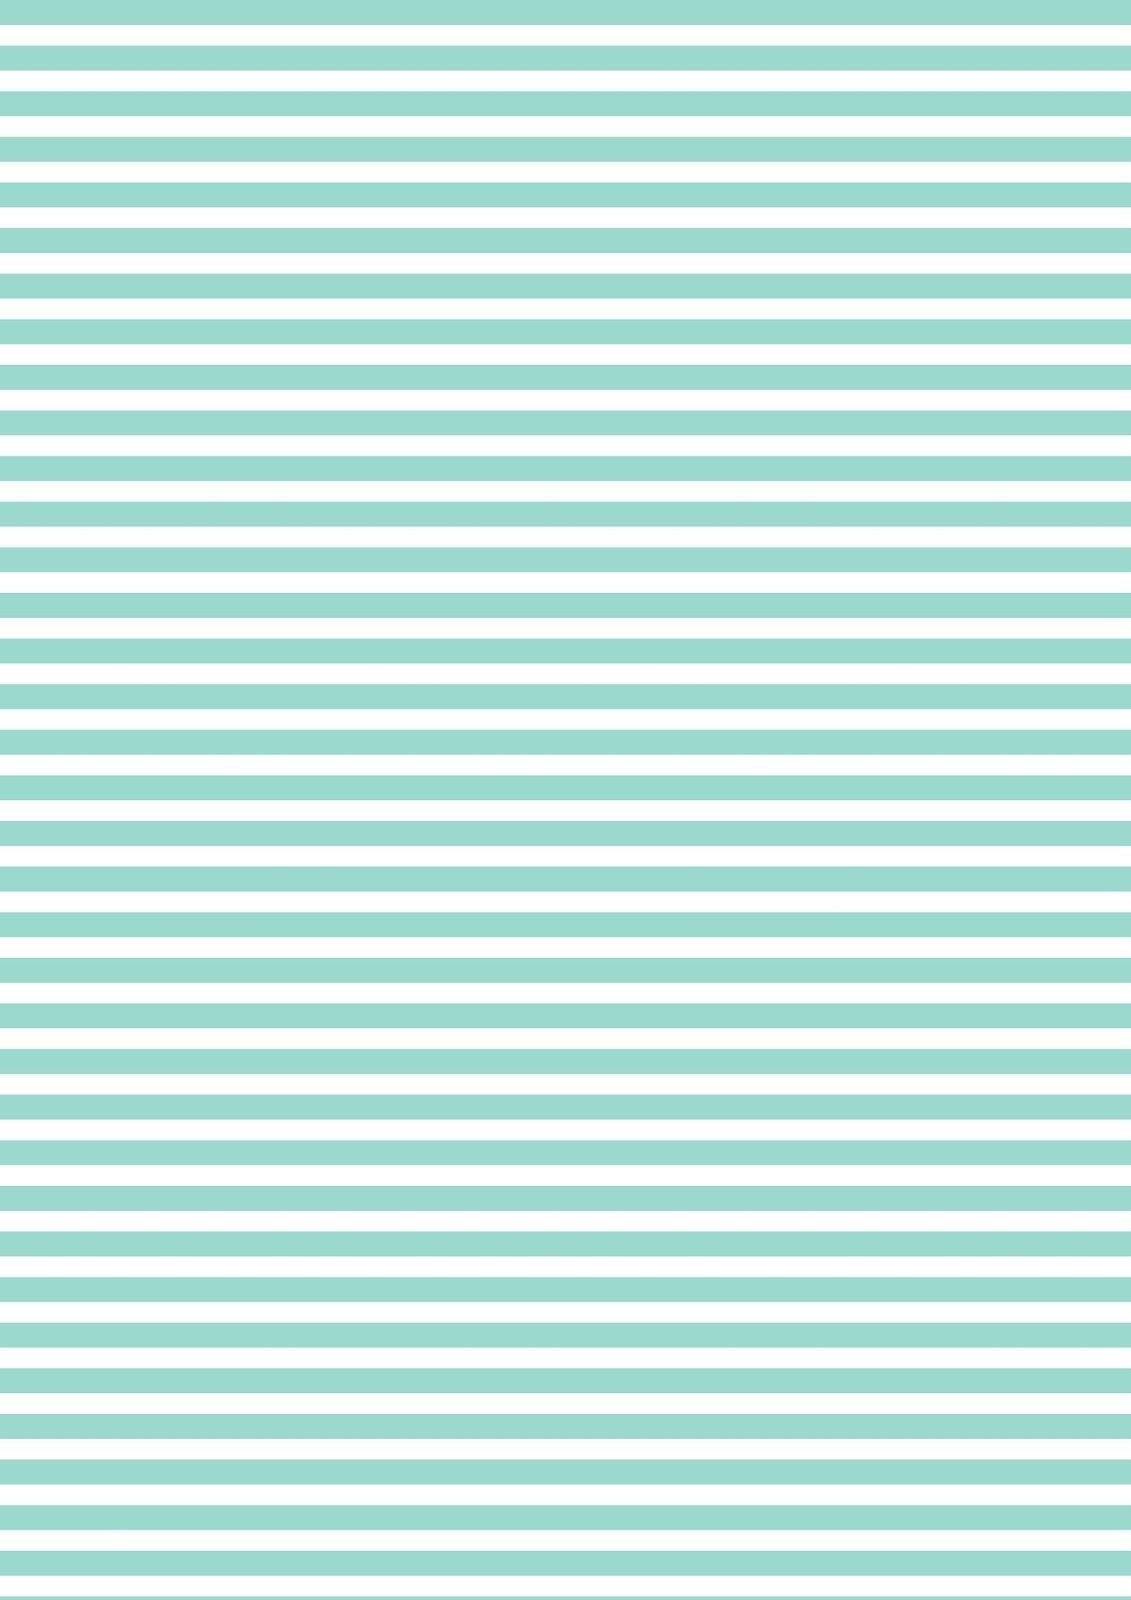 Scrapbook Backgrounds Printables Free Printable Turquoise White - Free Printable Backgrounds For Paper